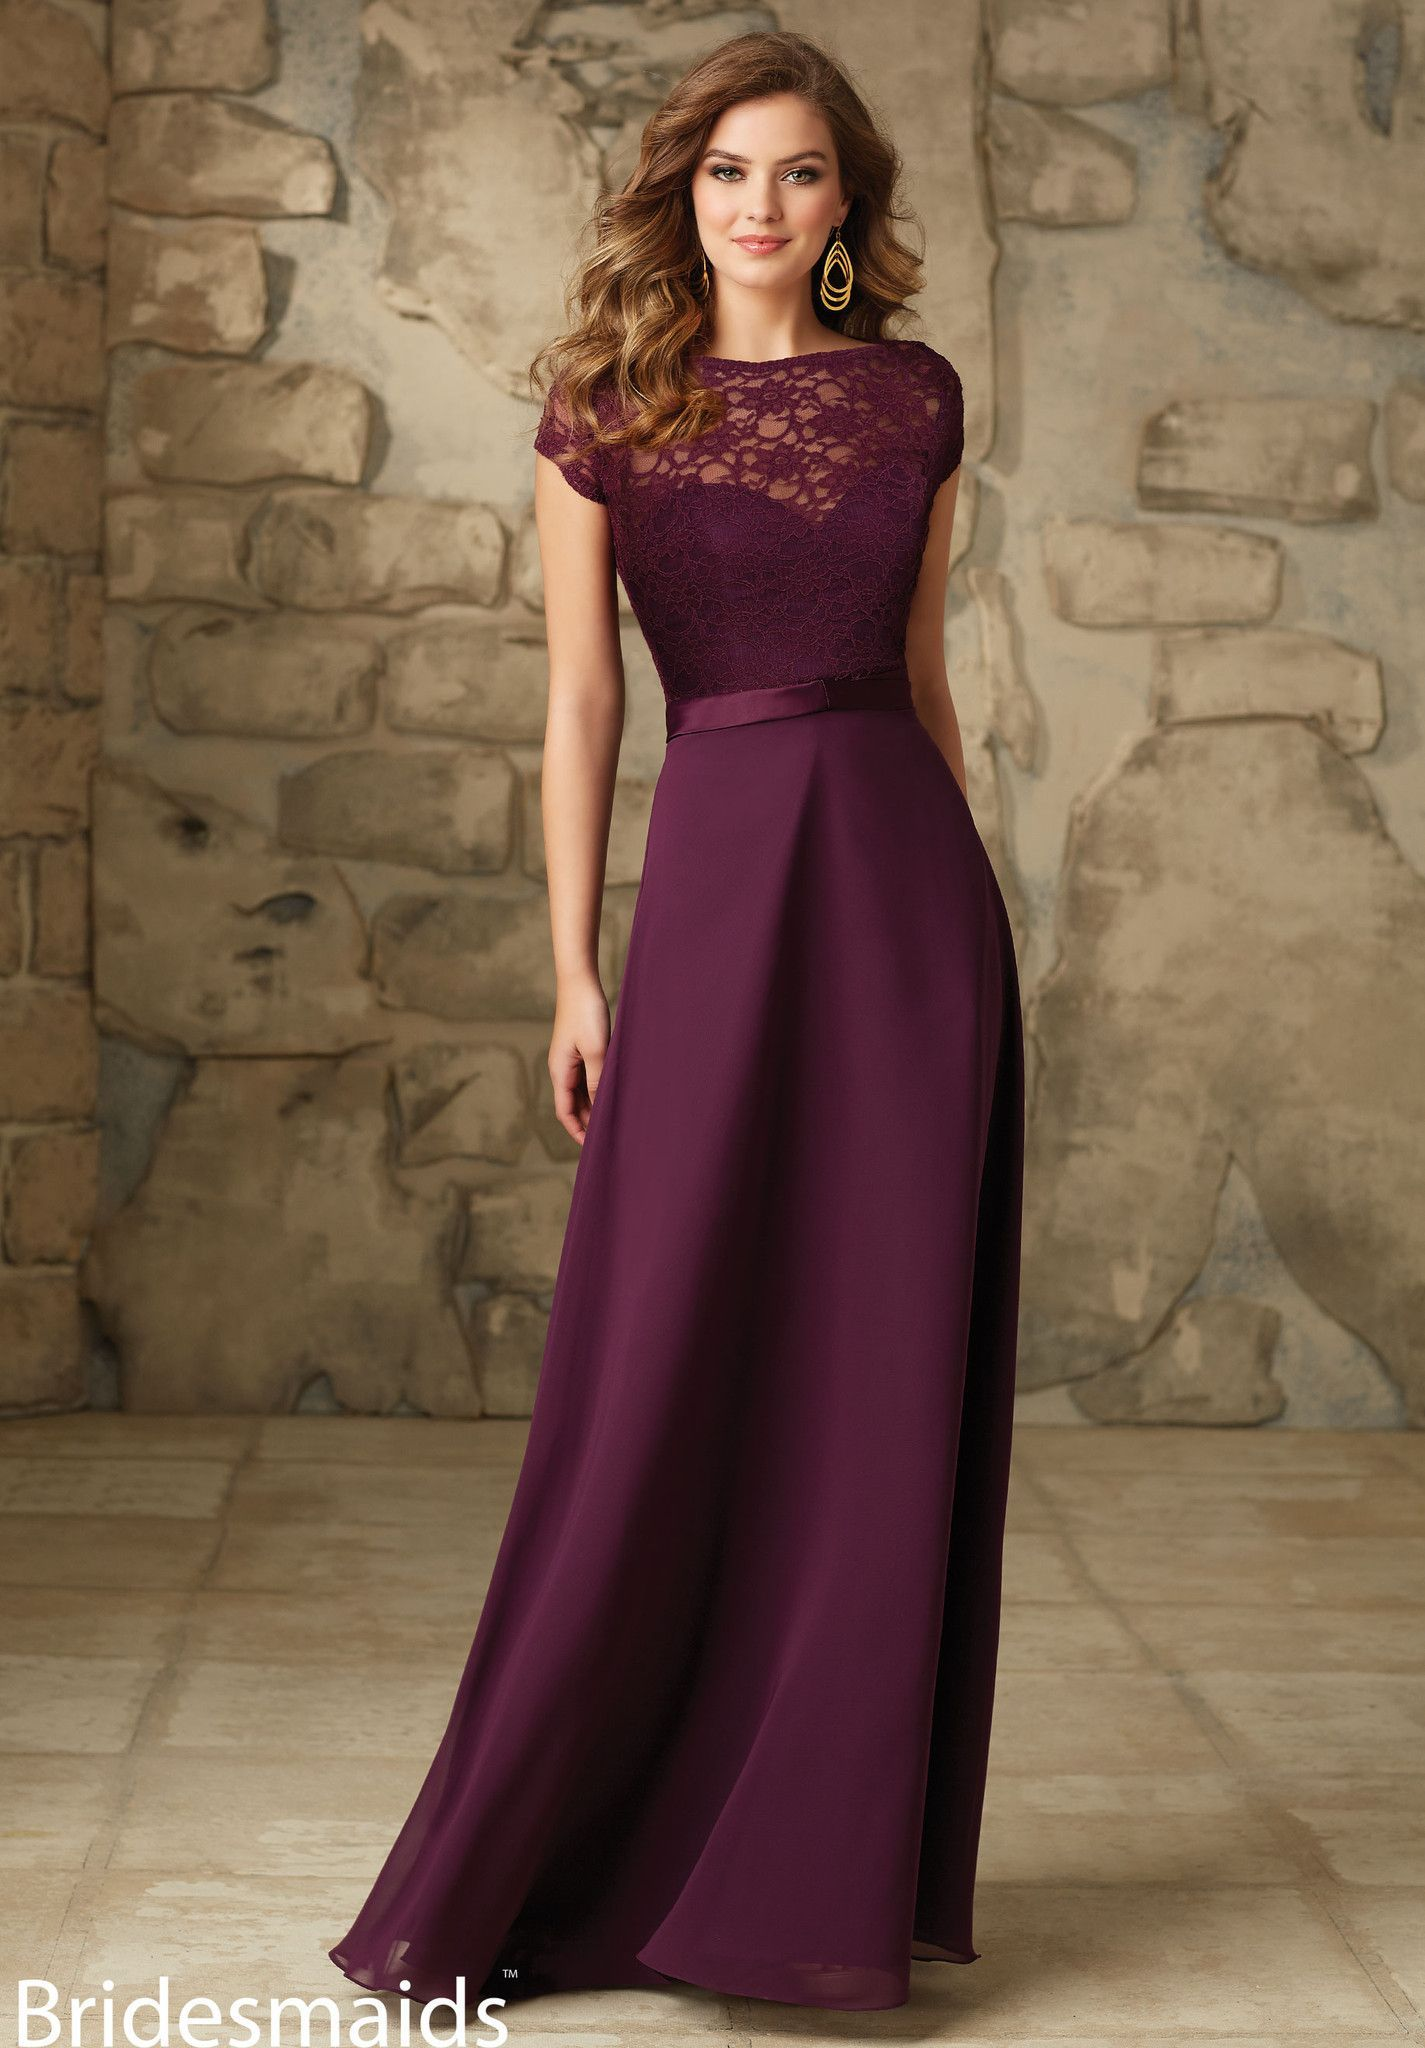 Mori Lee - 101 - All Dressed Up, Bridesmaids